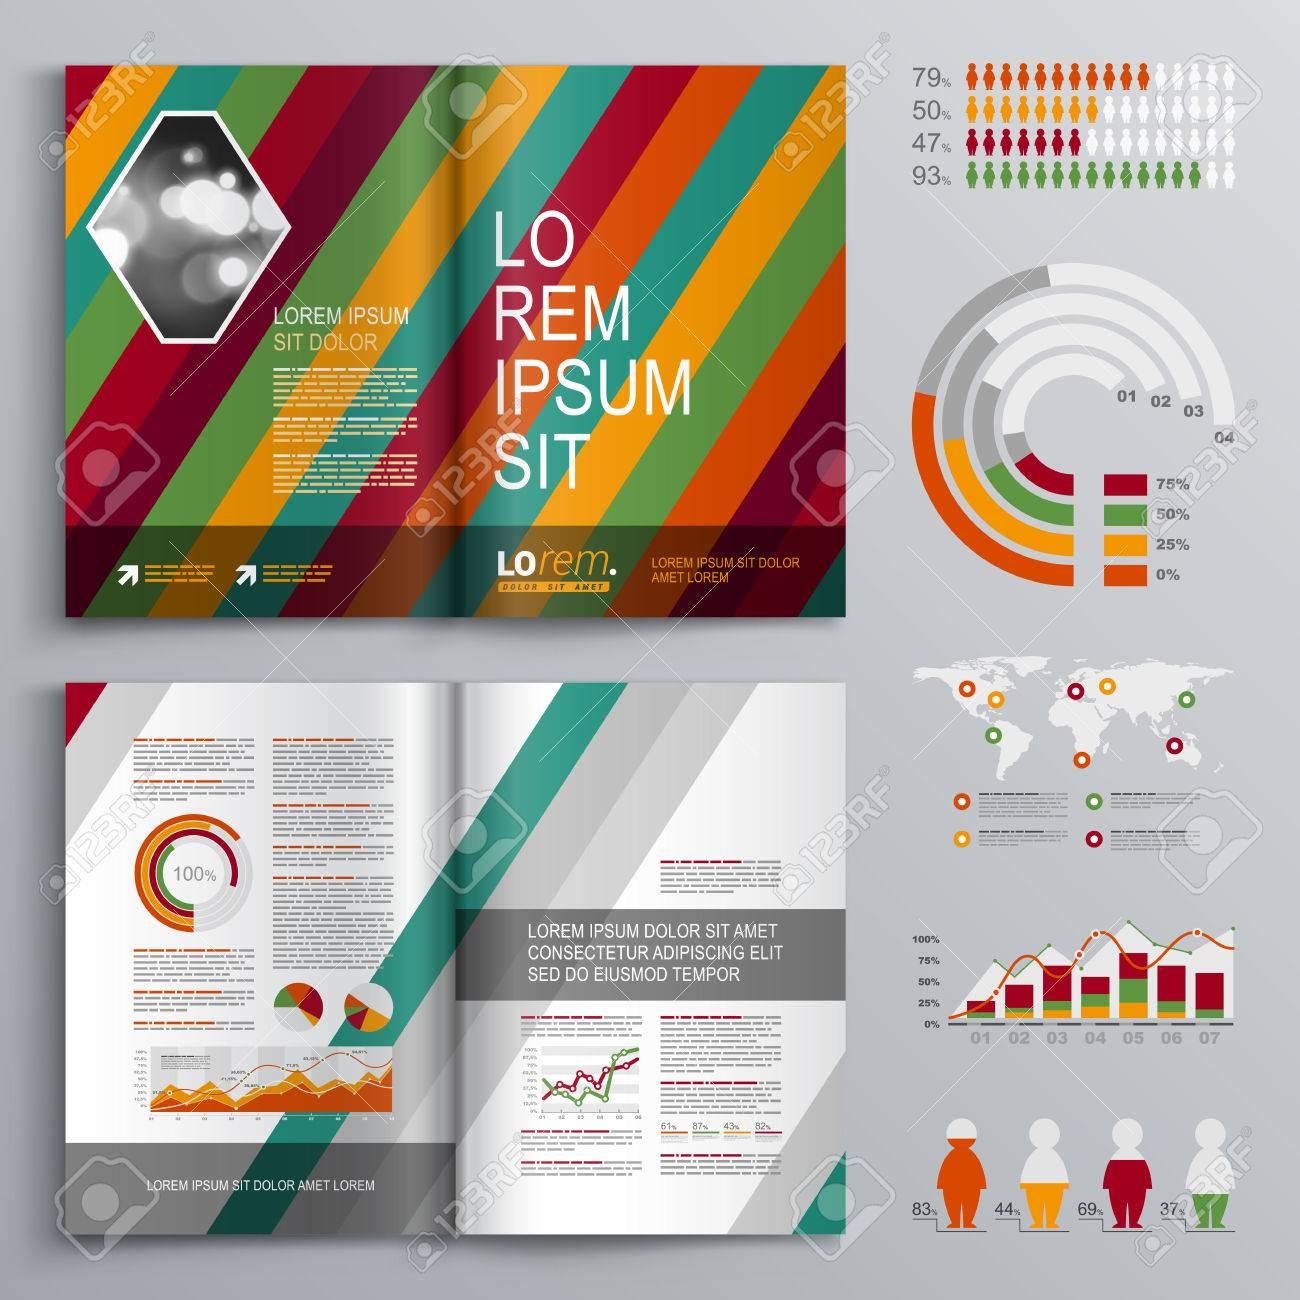 Fashion Brochure Template Design With Color Diagonal Stripes - Fashion brochure templates